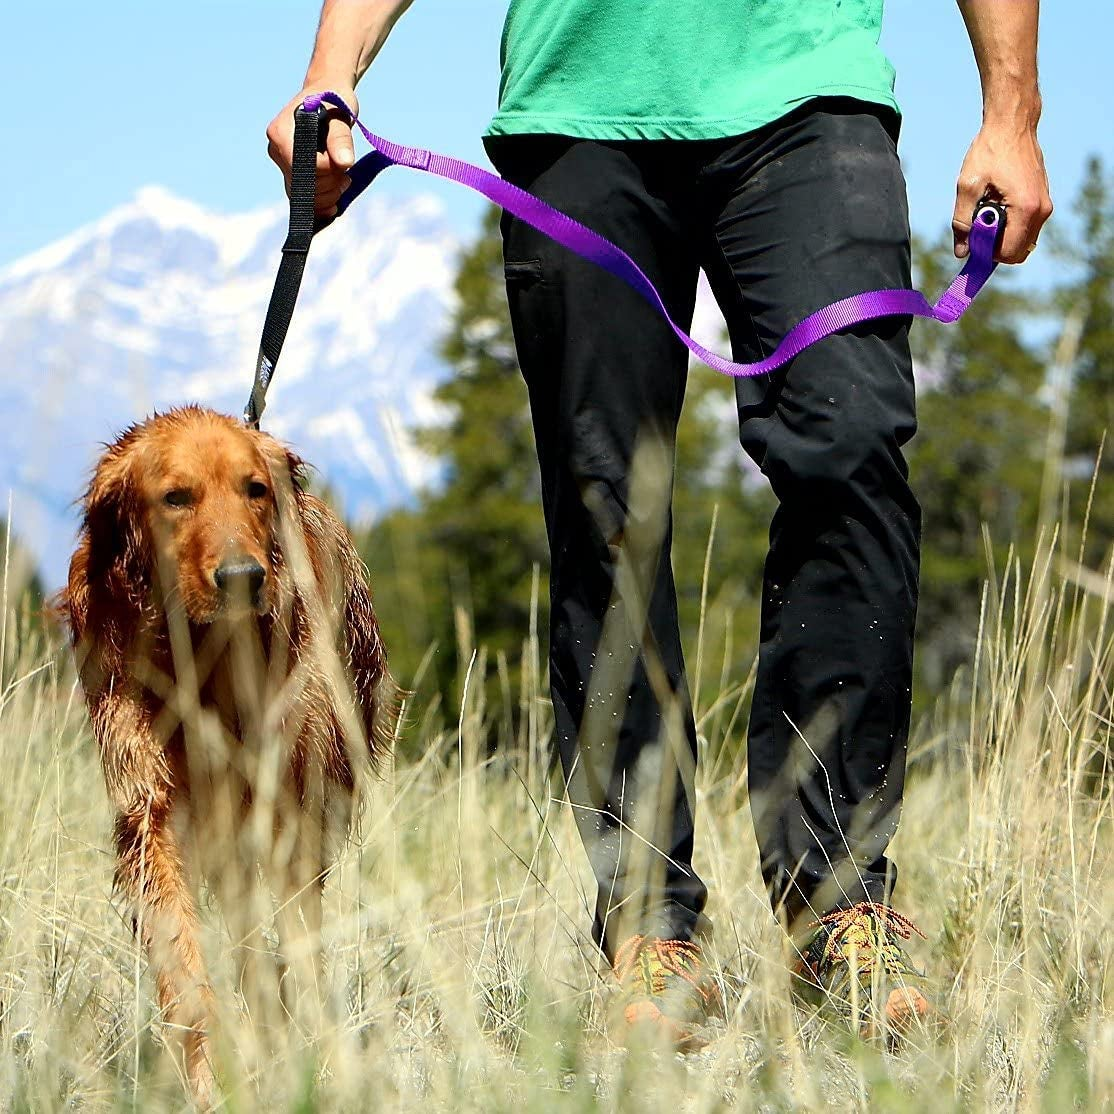 A dog being led by a leash with two wide gripper handles